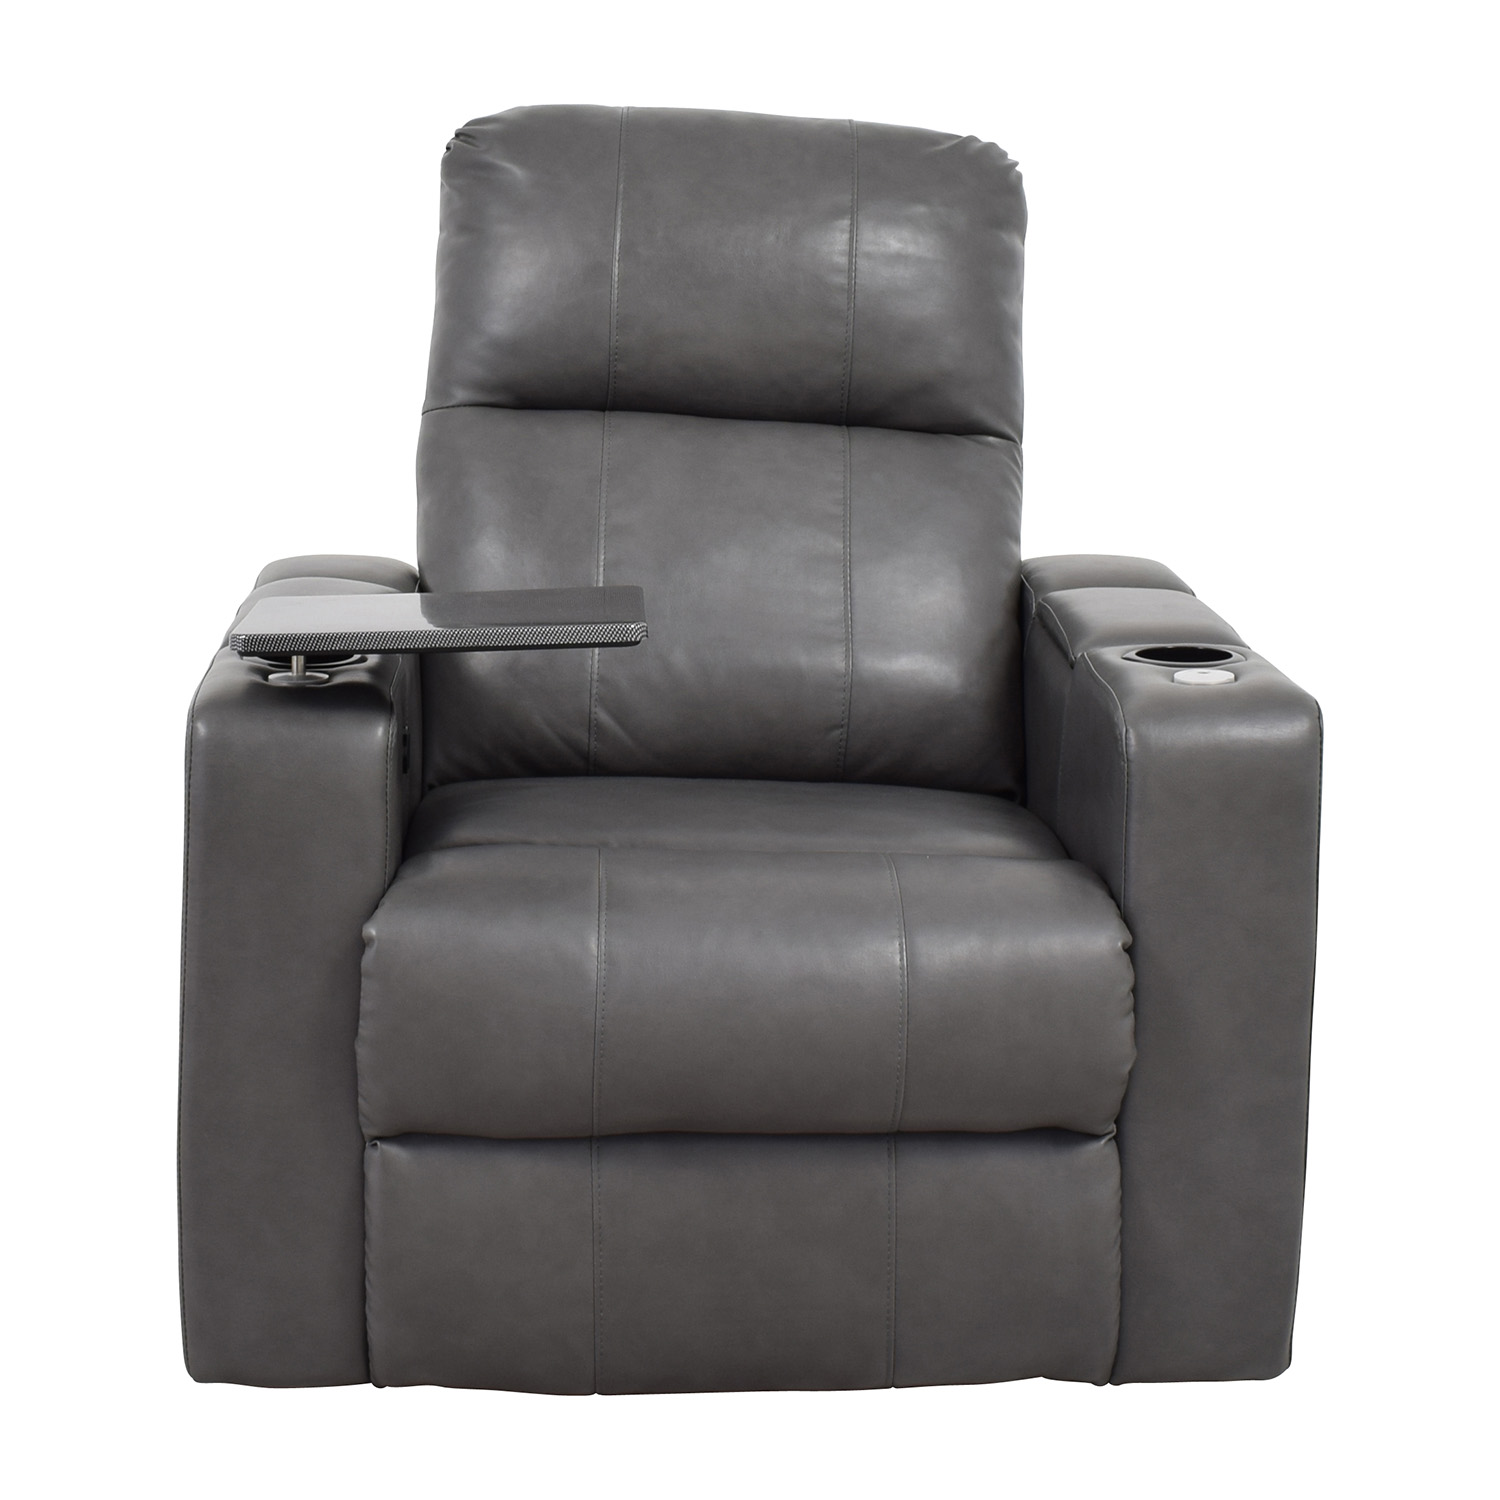 57% OFF Ashley Furniture Ashley Furniture Brown Leather